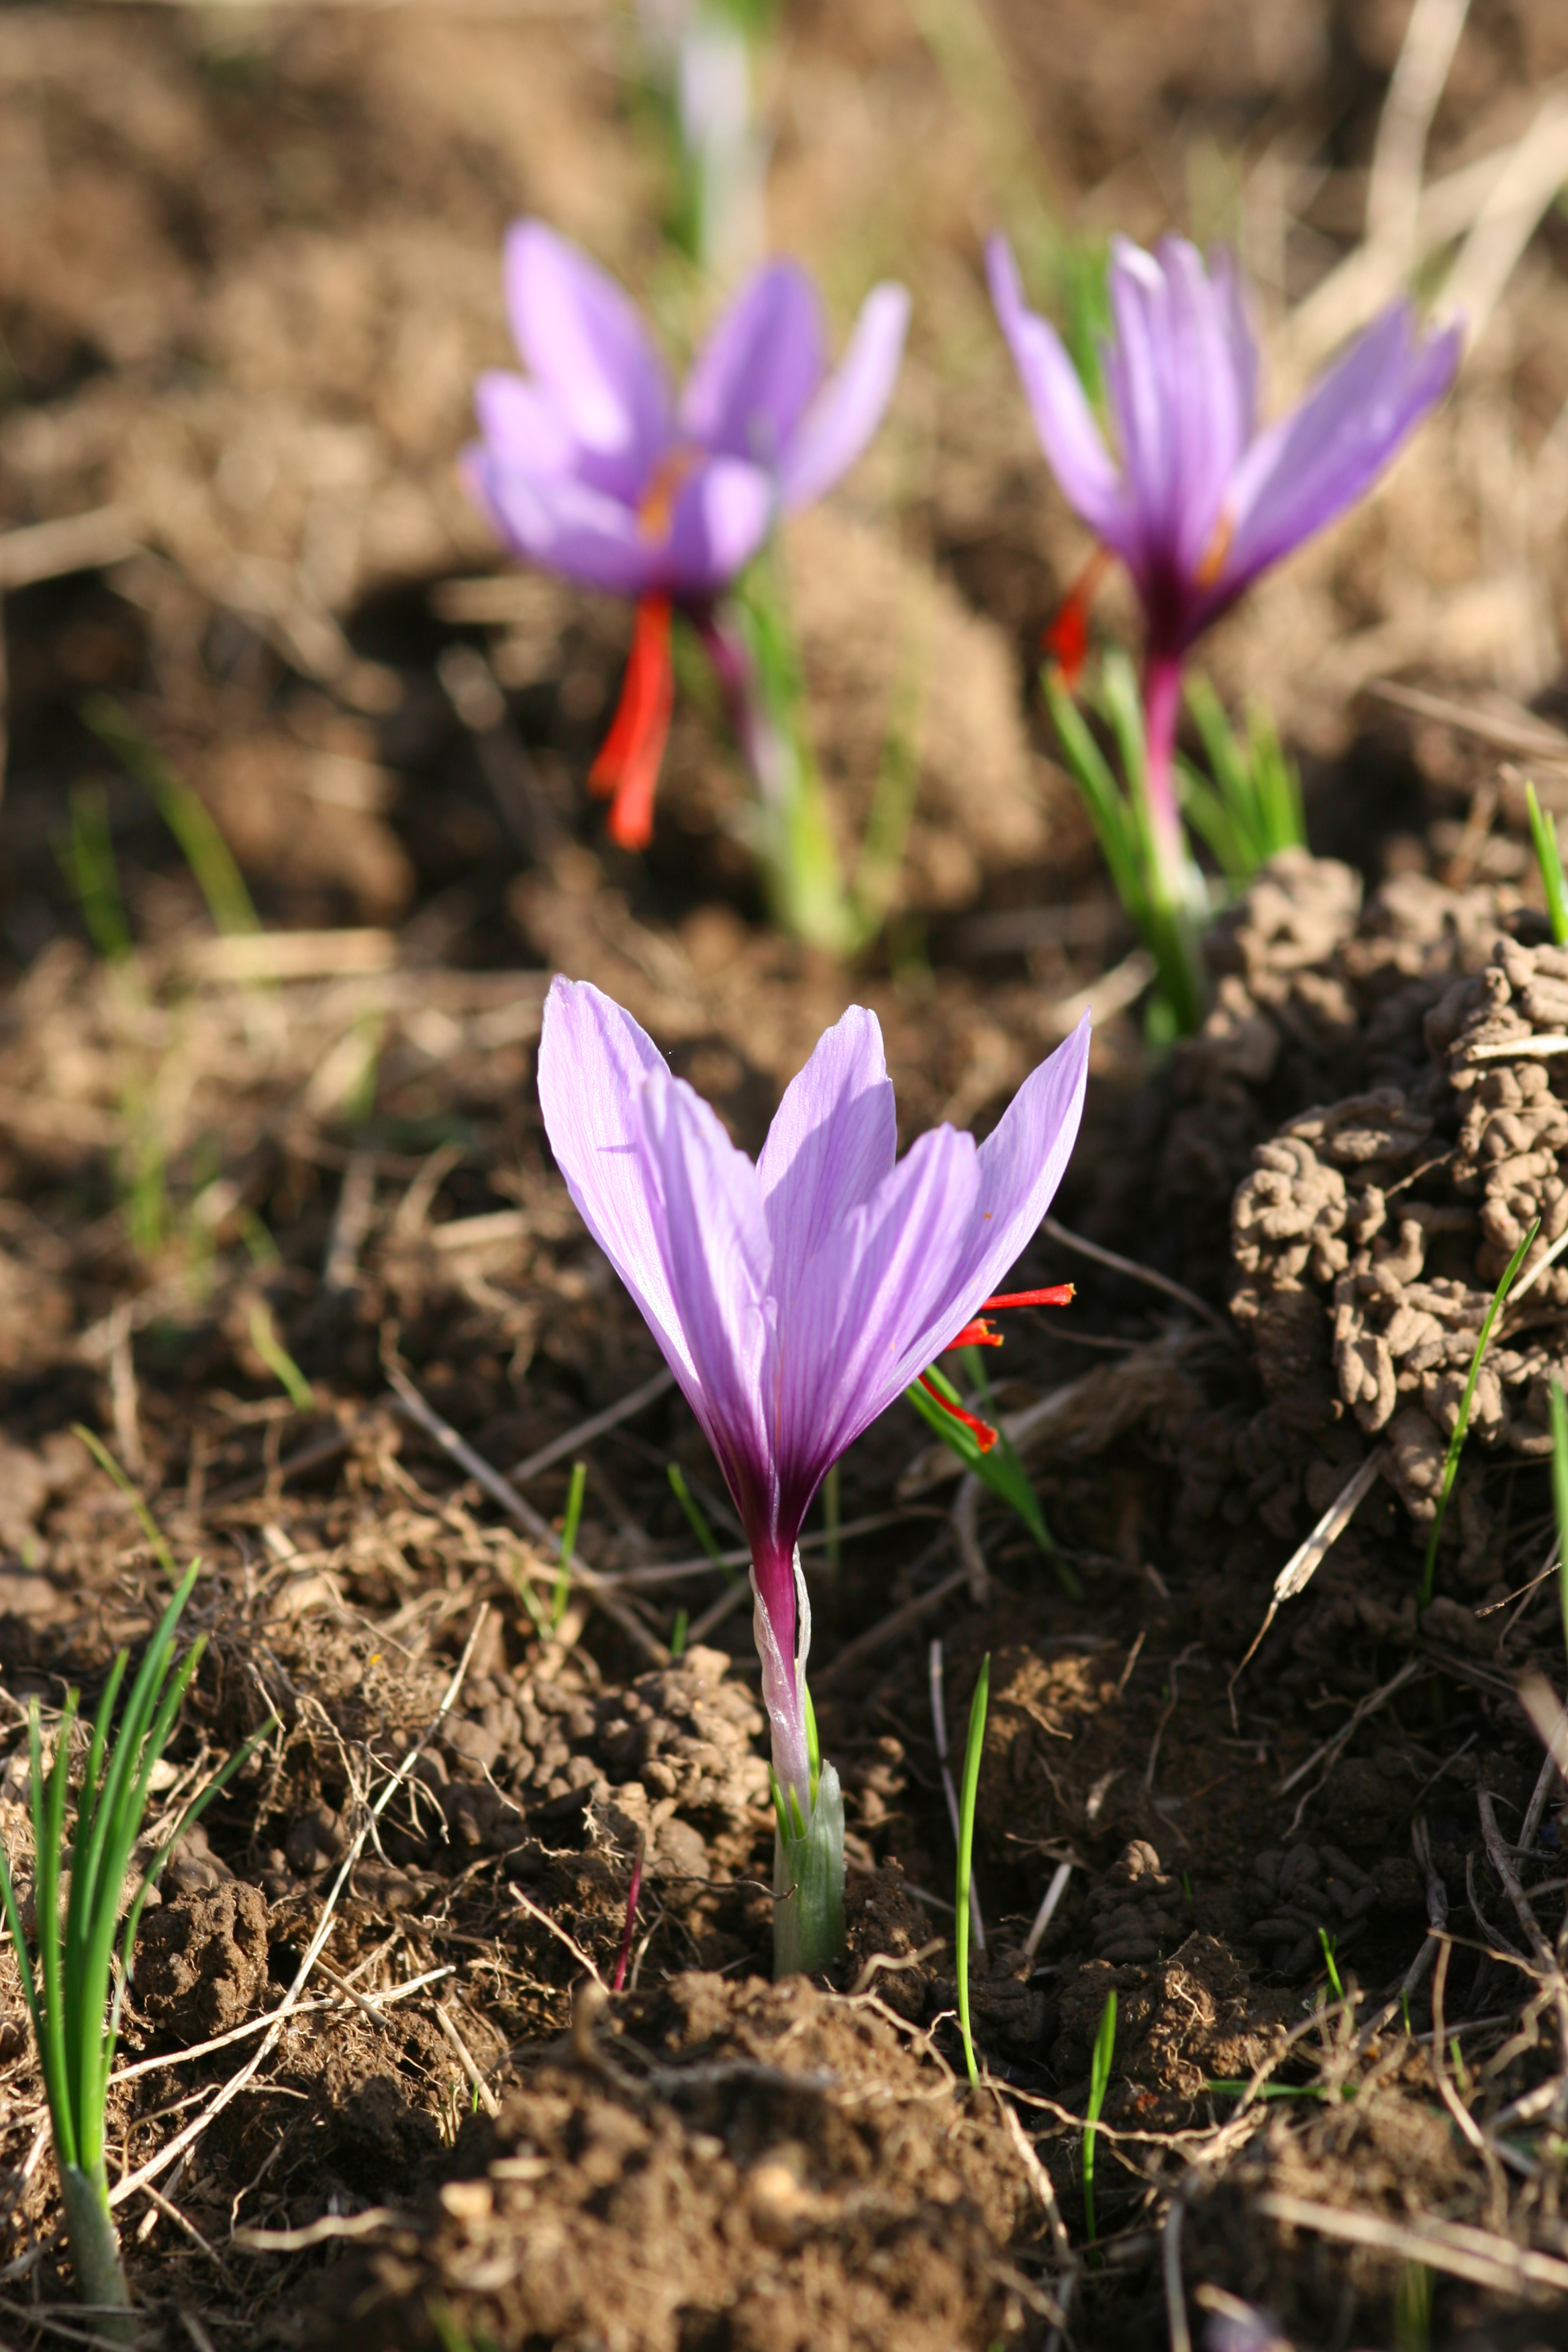 Saffron ready to be harvested